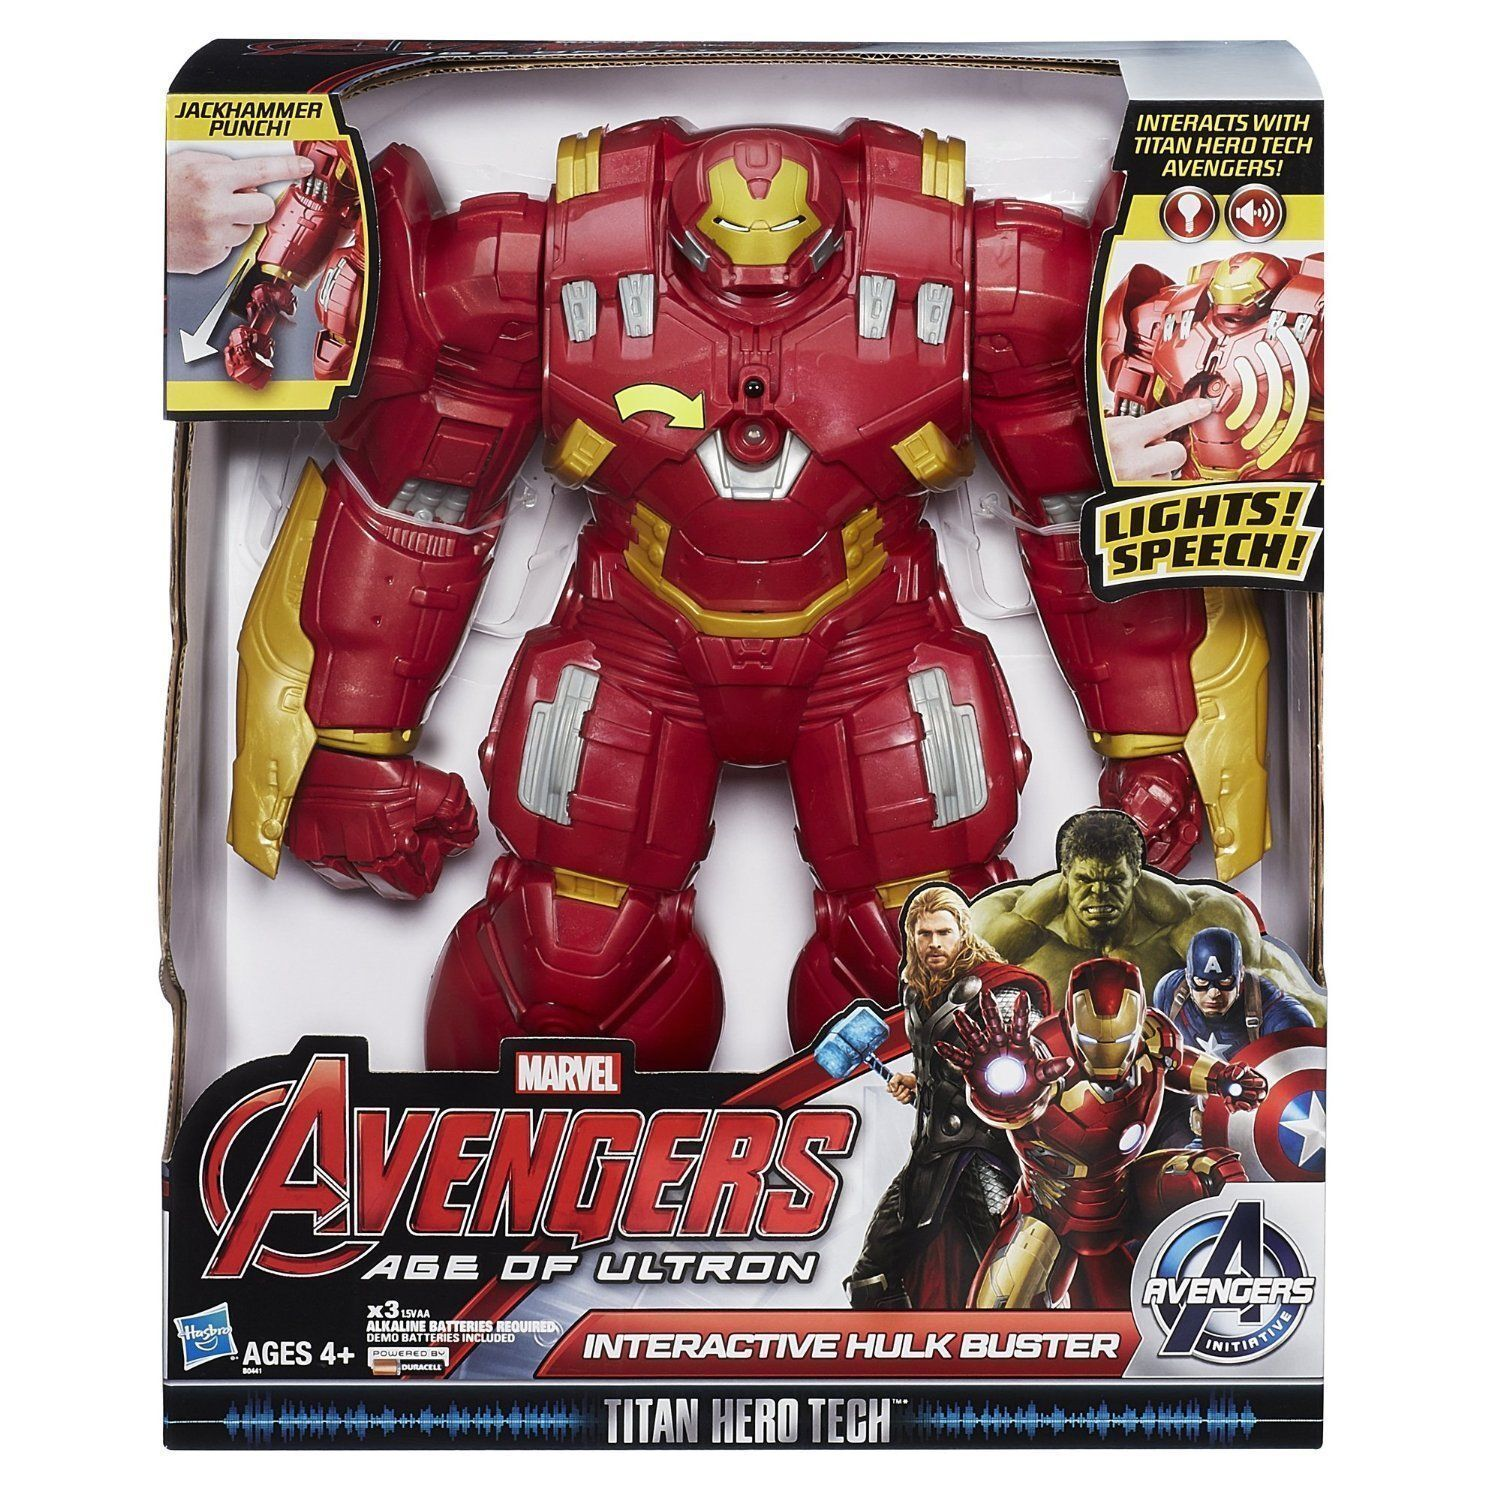 Hulk Buster IRON MAN MAN MAN Marvel Avengers Age Of Ultron Interactive NEW TALKS  c92e53